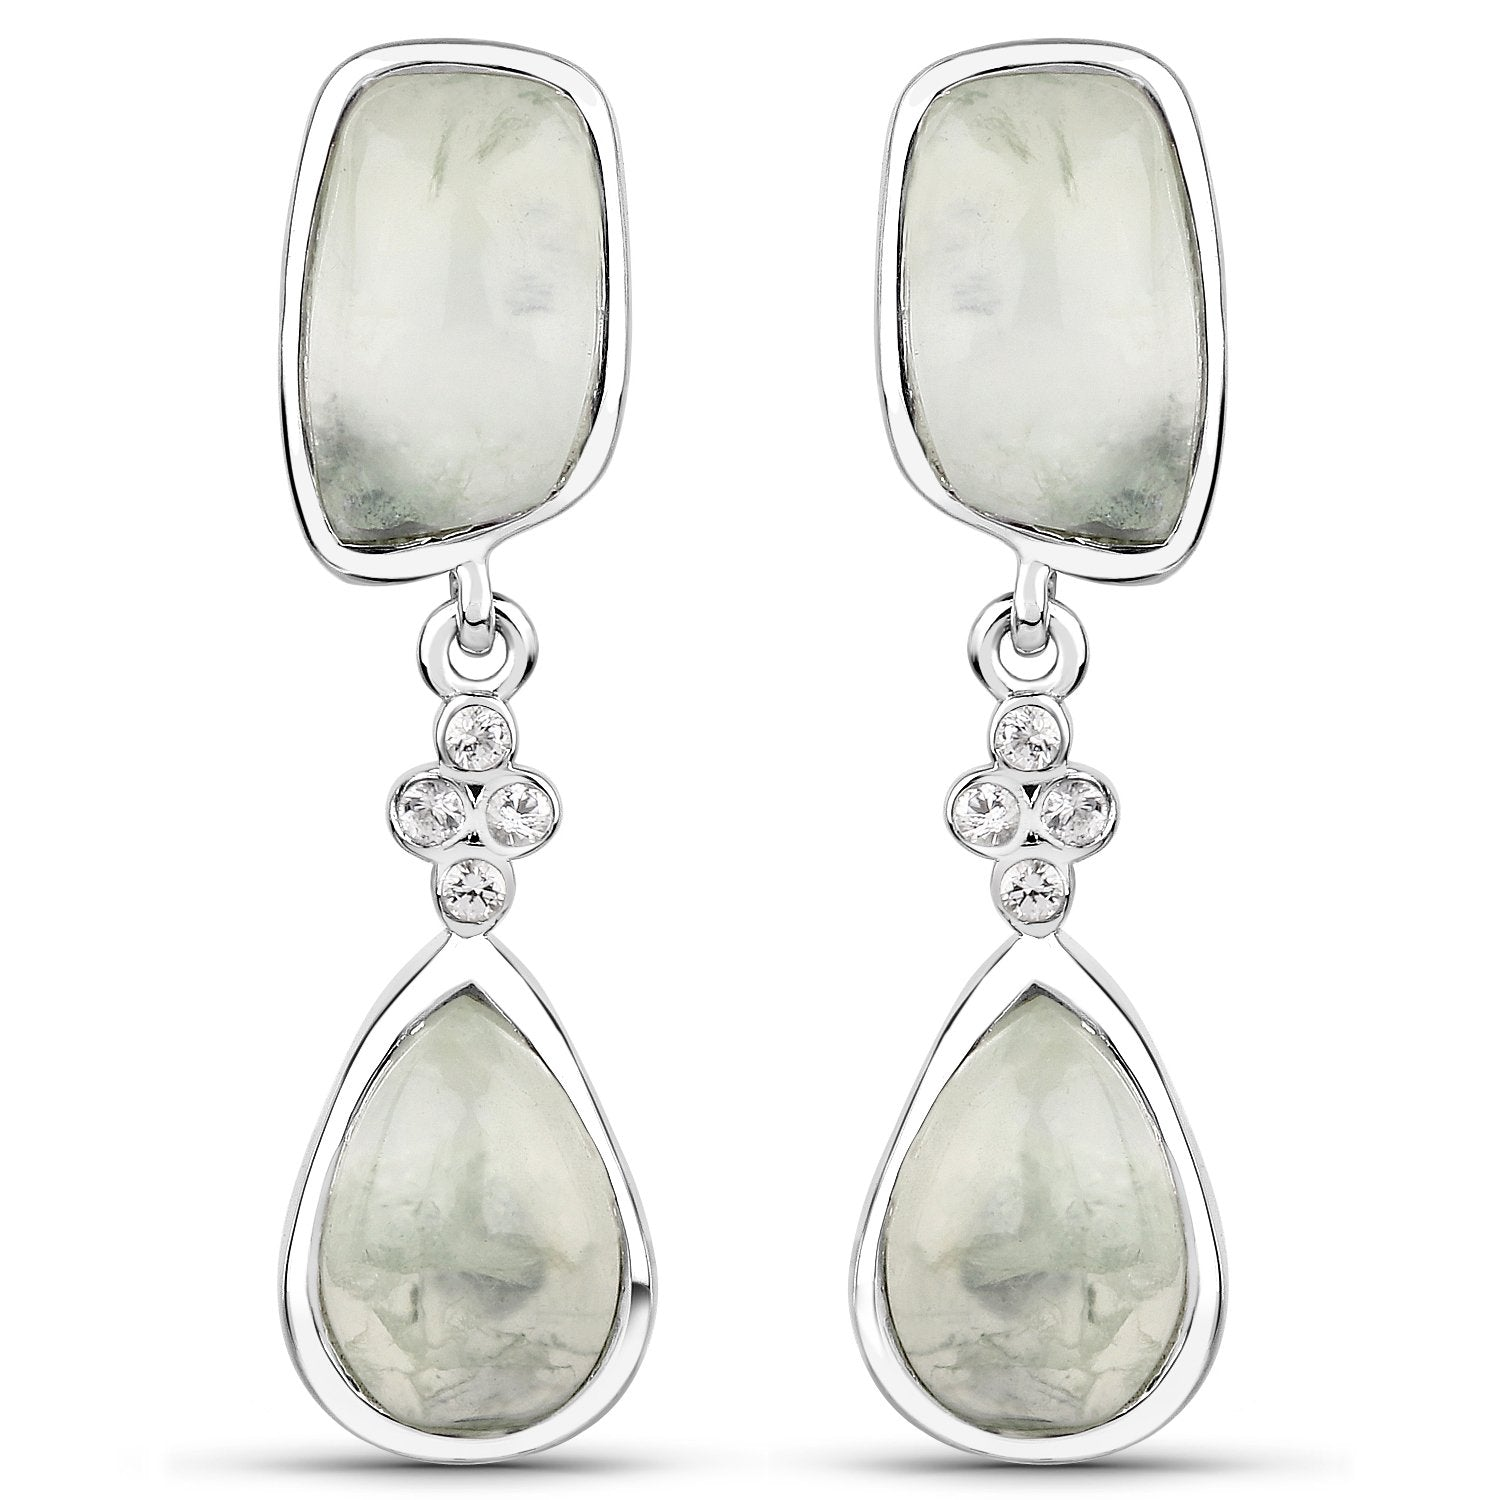 LoveHuang 13.03 Carats Genuine Prehnite and White Topaz Dangle Earrings Solid .925 Sterling Silver With Rhodium Plating